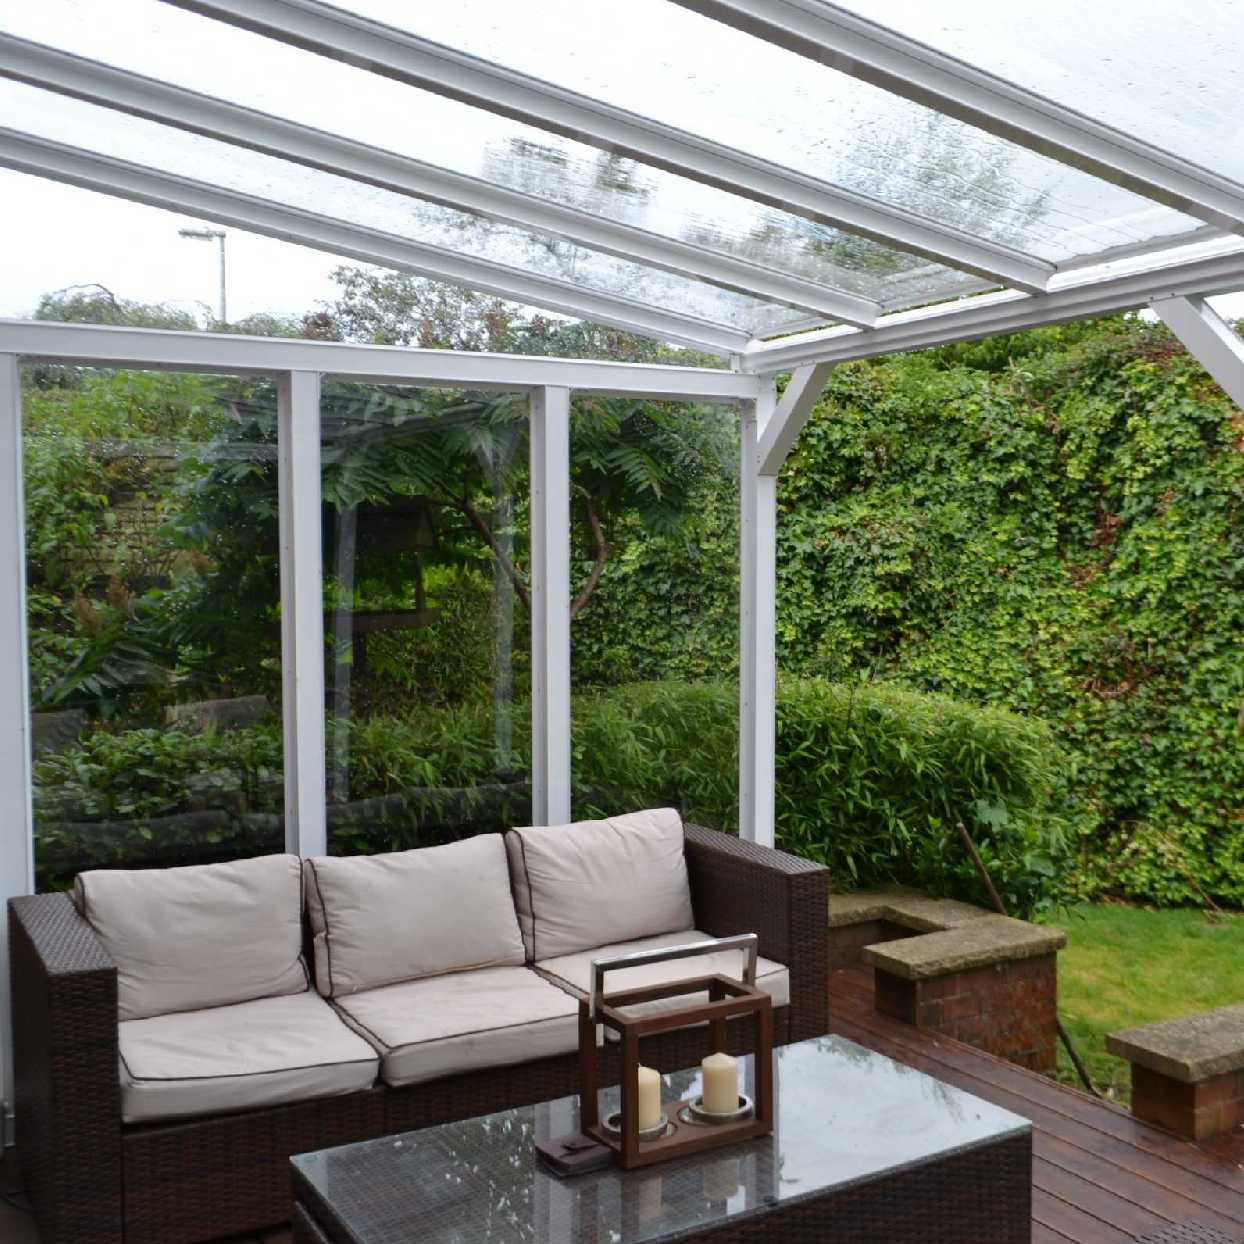 Great selection of Omega Smart Lean-To Canopy with 16mm Polycarbonate Glazing - 4.2m (W) x 3.0m (P), (3) Supporting Posts